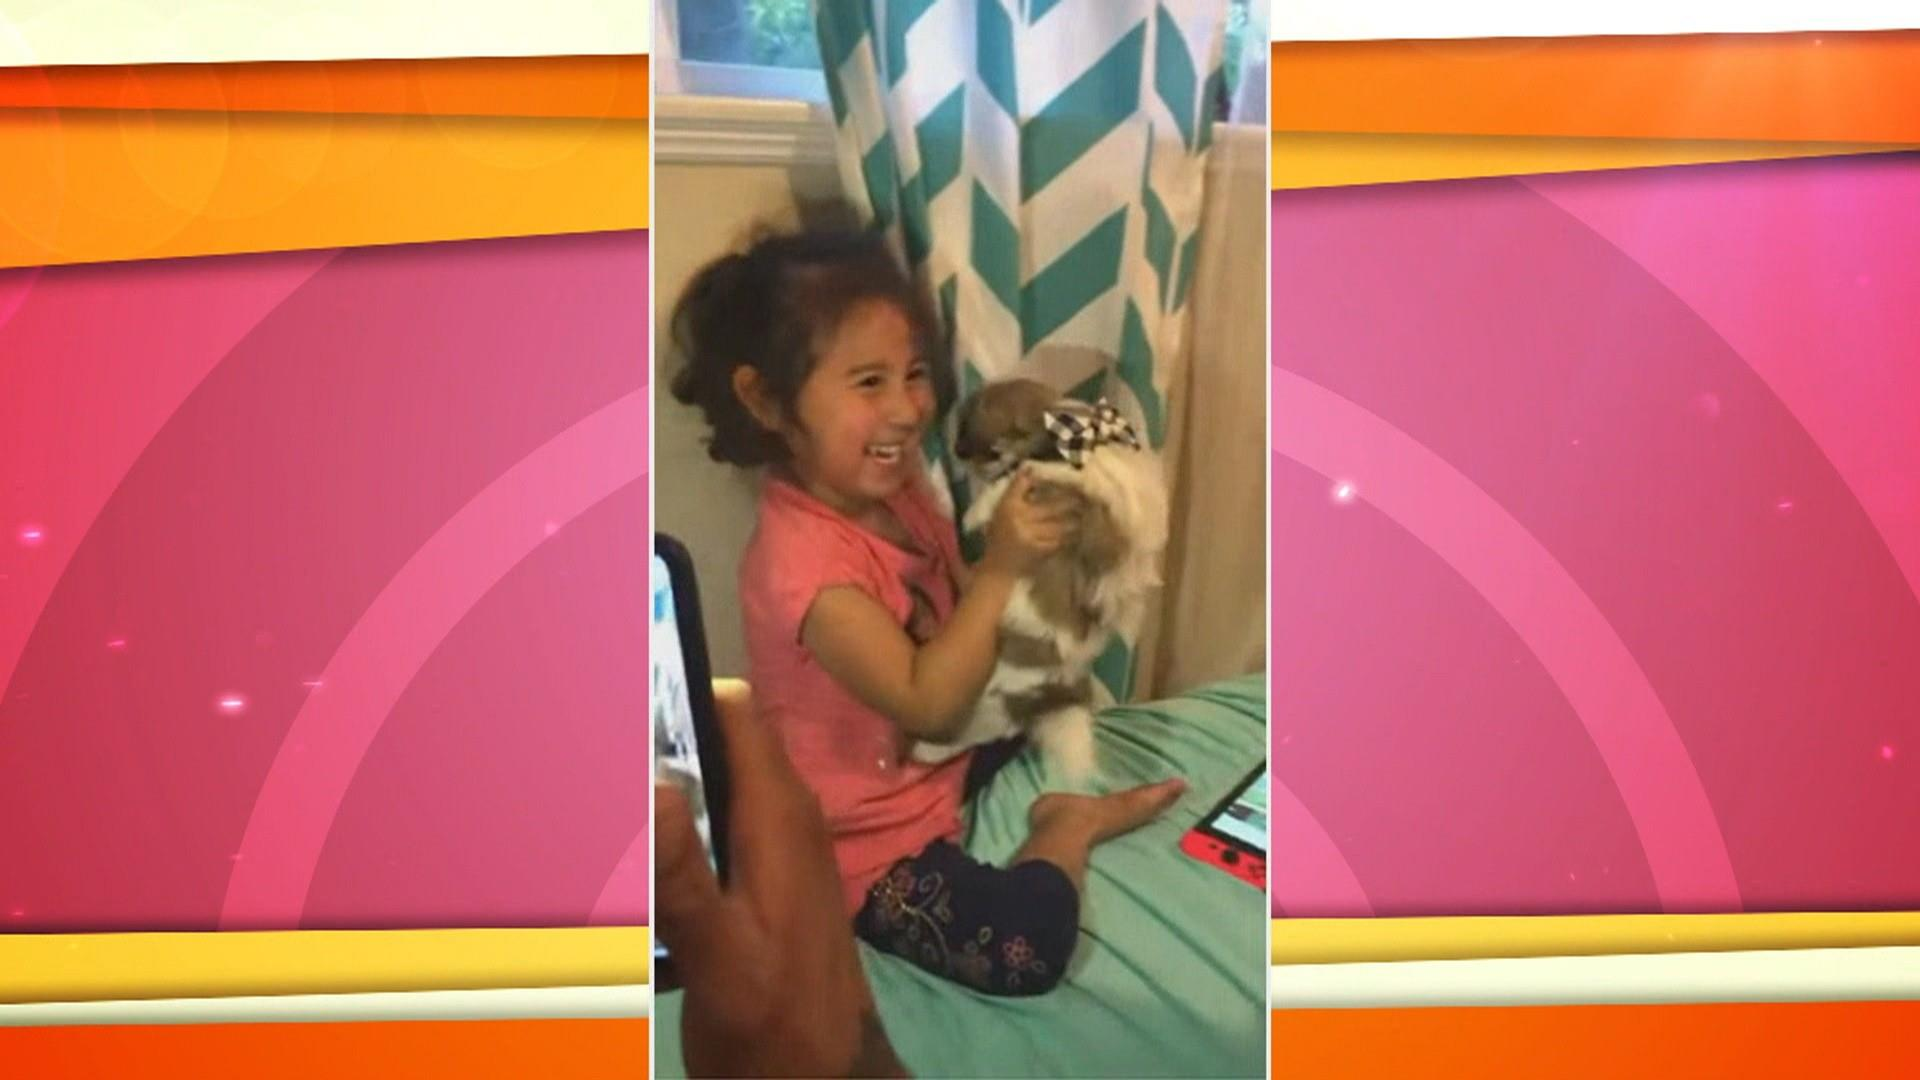 Abracadabra! Little girl makes surprise puppy appear by 'magic'